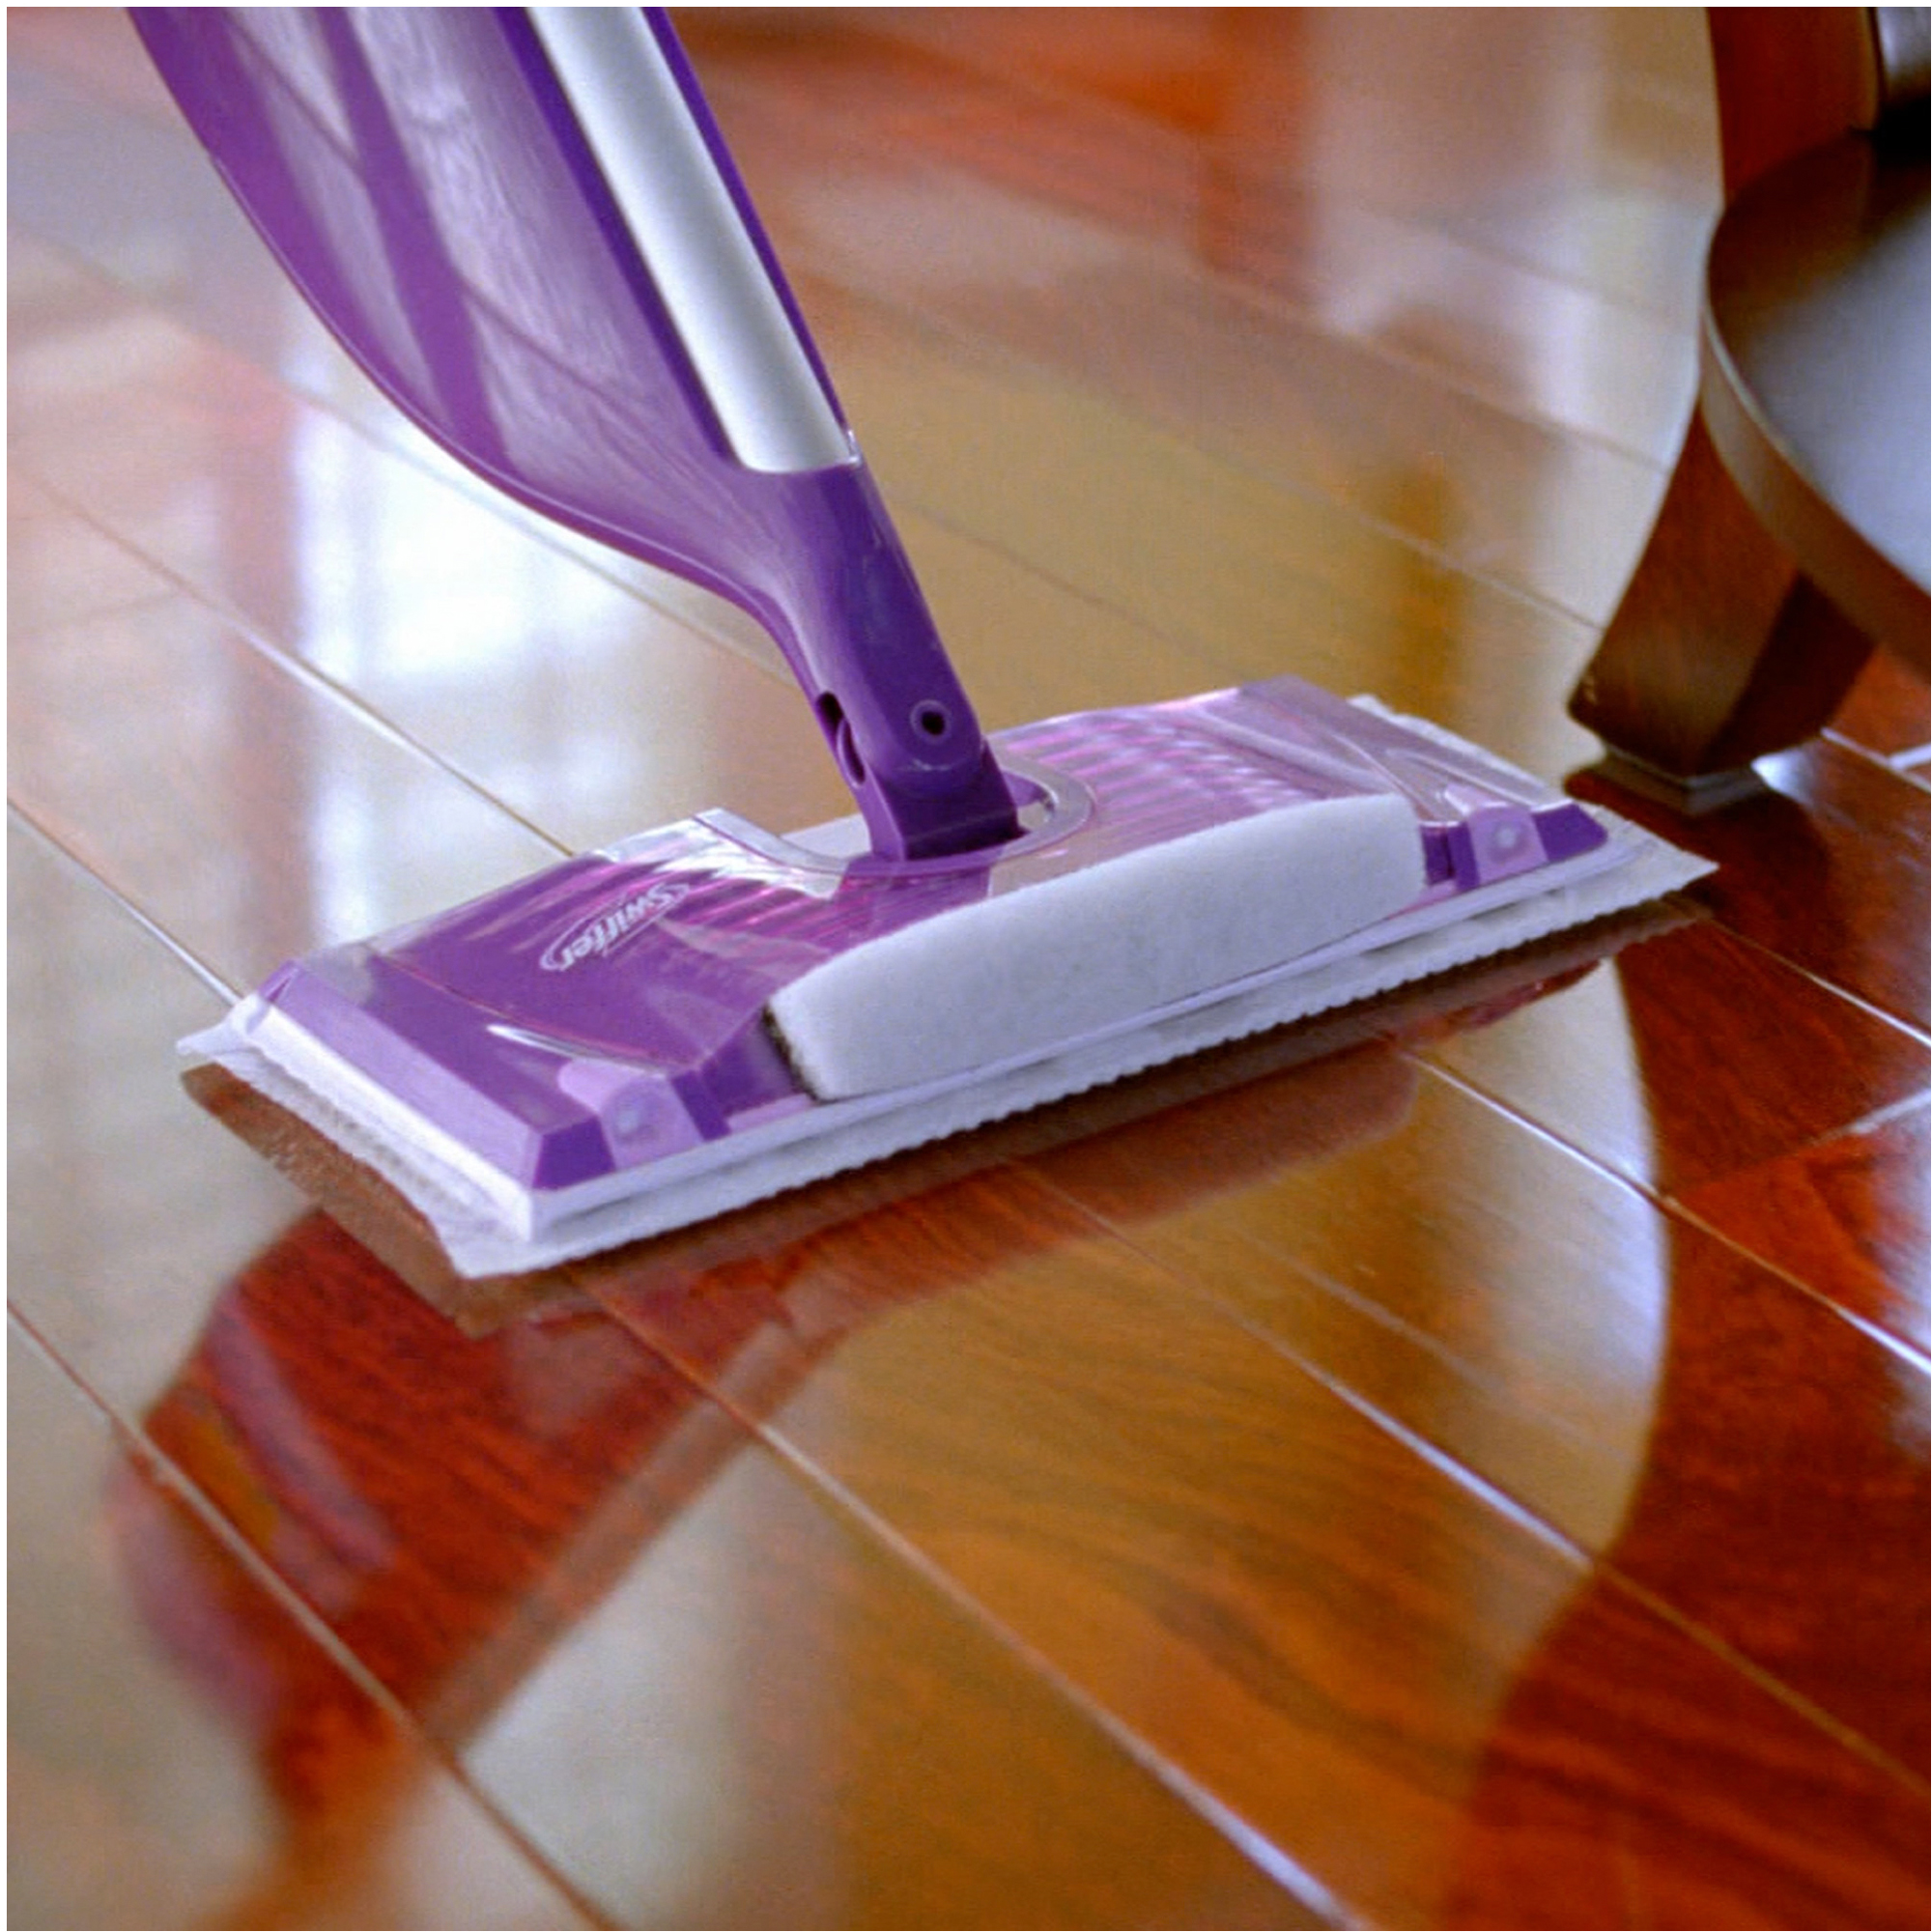 Swiffer wetjet wood floor cleaner - A Lot Of You Have Been Asking If It S Safe To Use Your Swiffer Wetjet On Your Wood Floors So I Thought It Was About Time To Write An Article On This